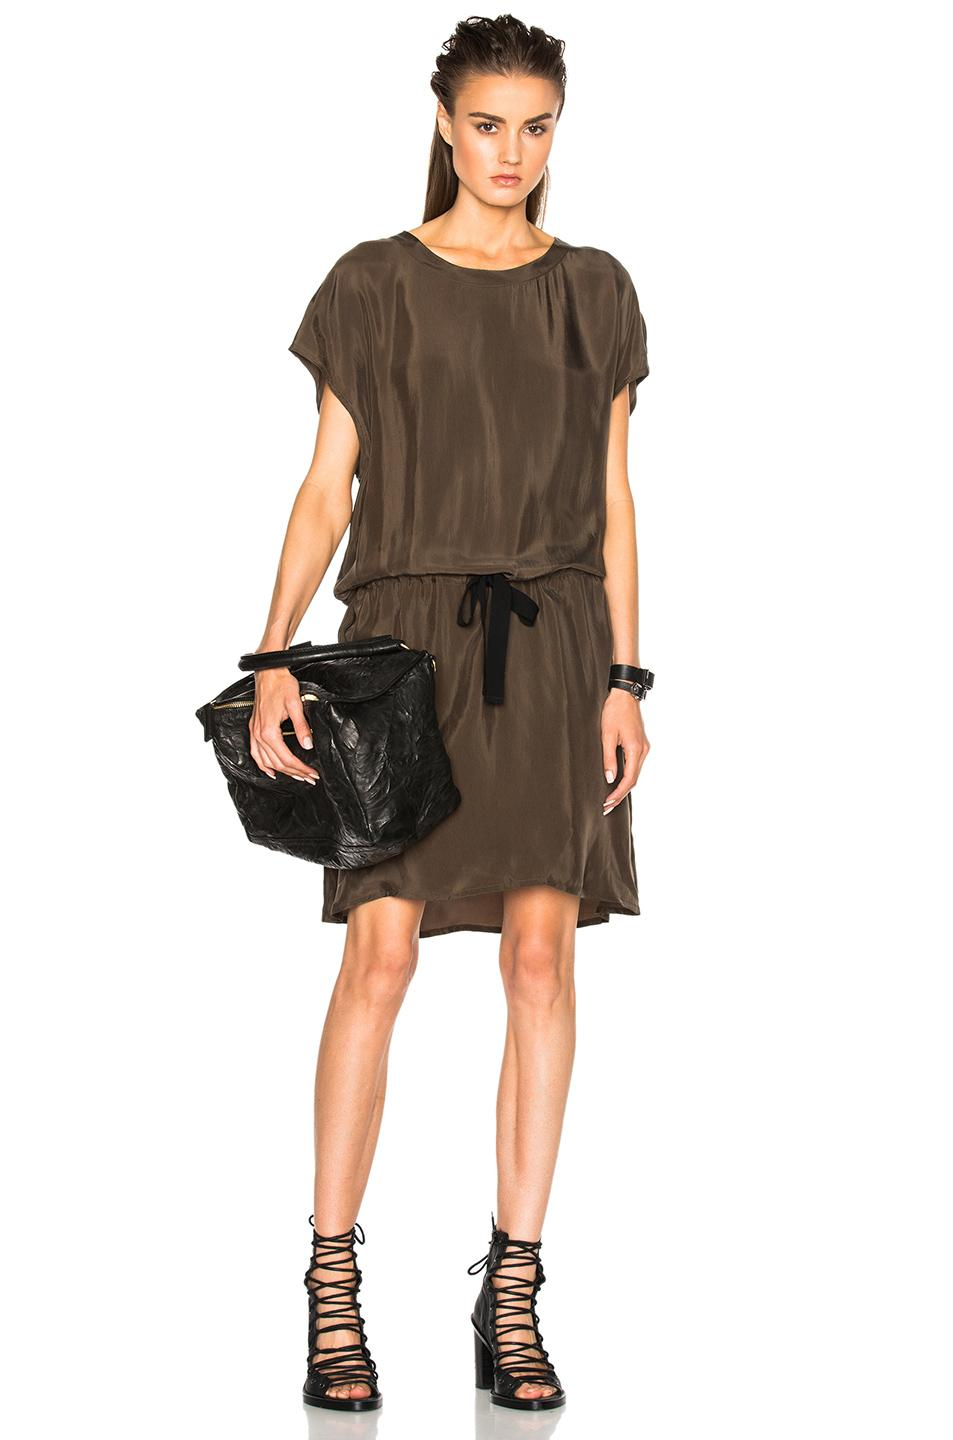 Ann Demeulemeester Drawstring Dress In Green. In Khaki